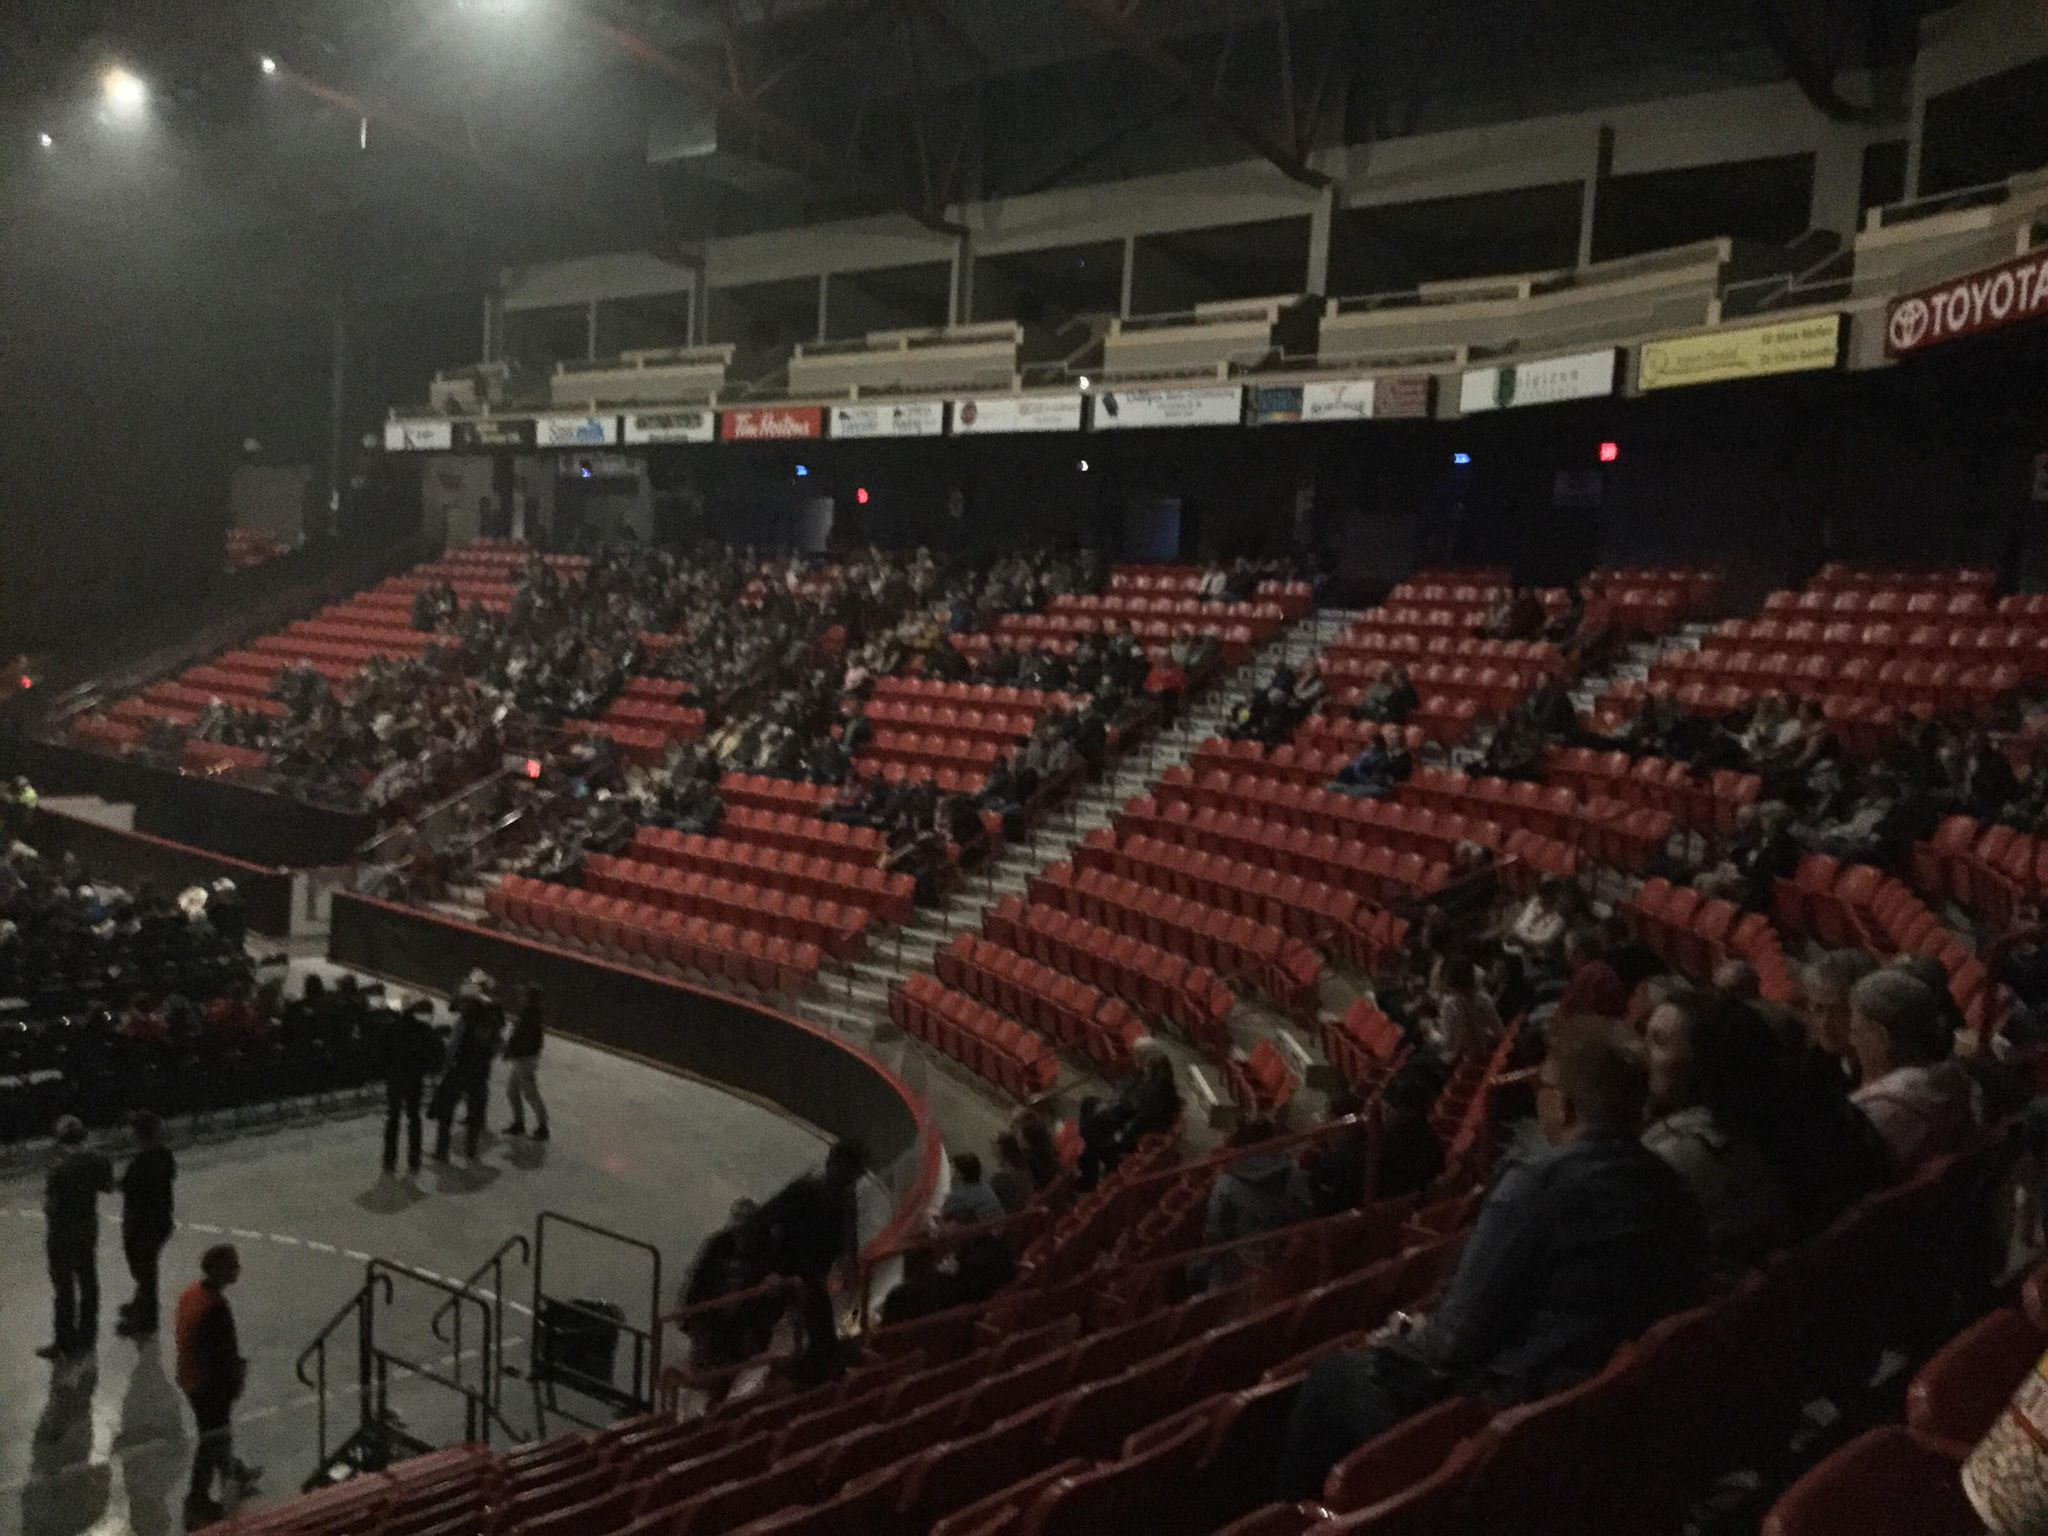 Everyone is commenting about the bad turnout - Comment by concert attendee Submitted Photo